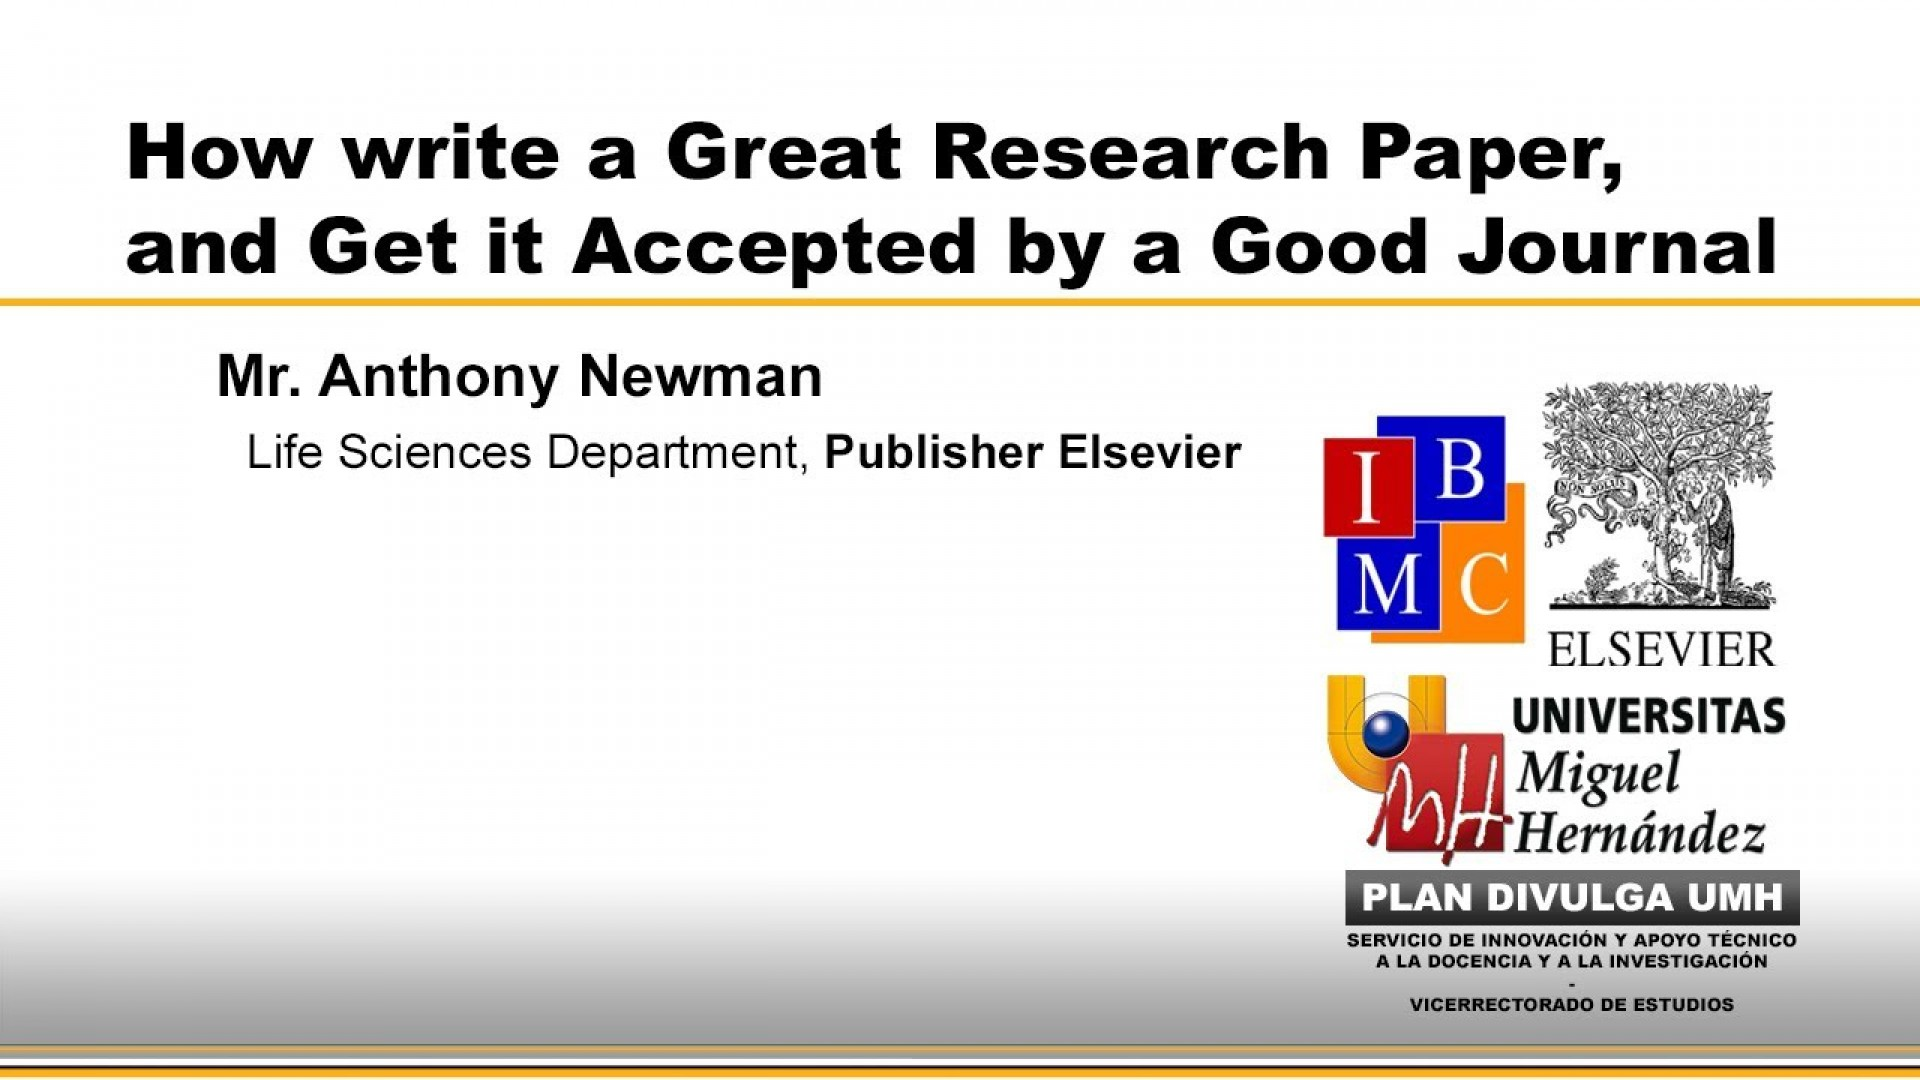 017 How To Do Research Paper Marvelous Write A Good Review Chapter 1 Fast 1920